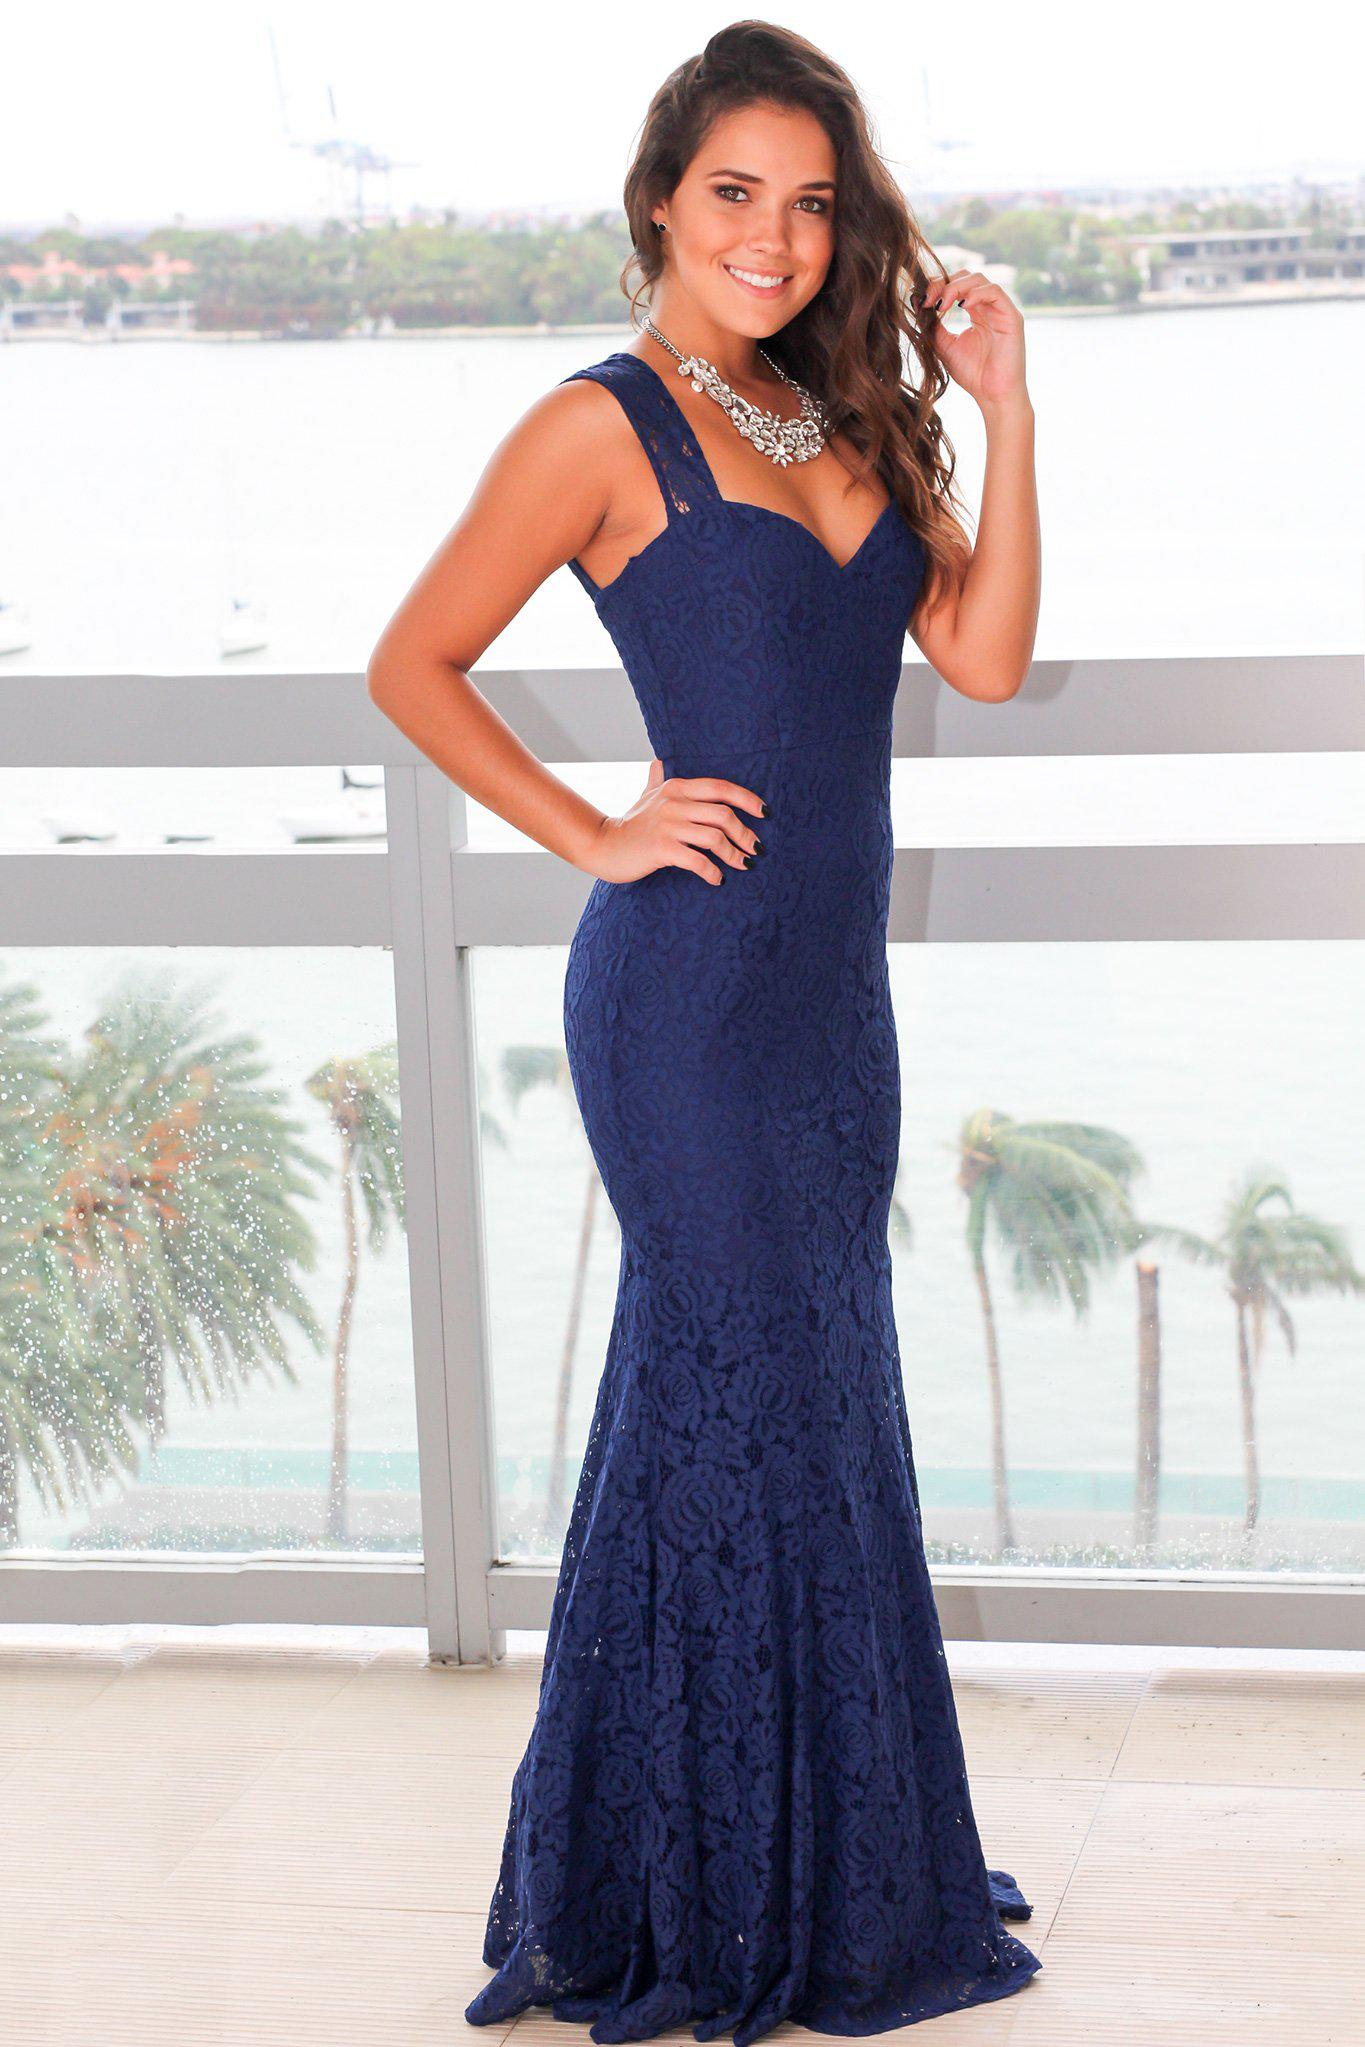 caff85eb94 Navy Lace Maxi Bridesmaid Dress | Huston Fislar Photography